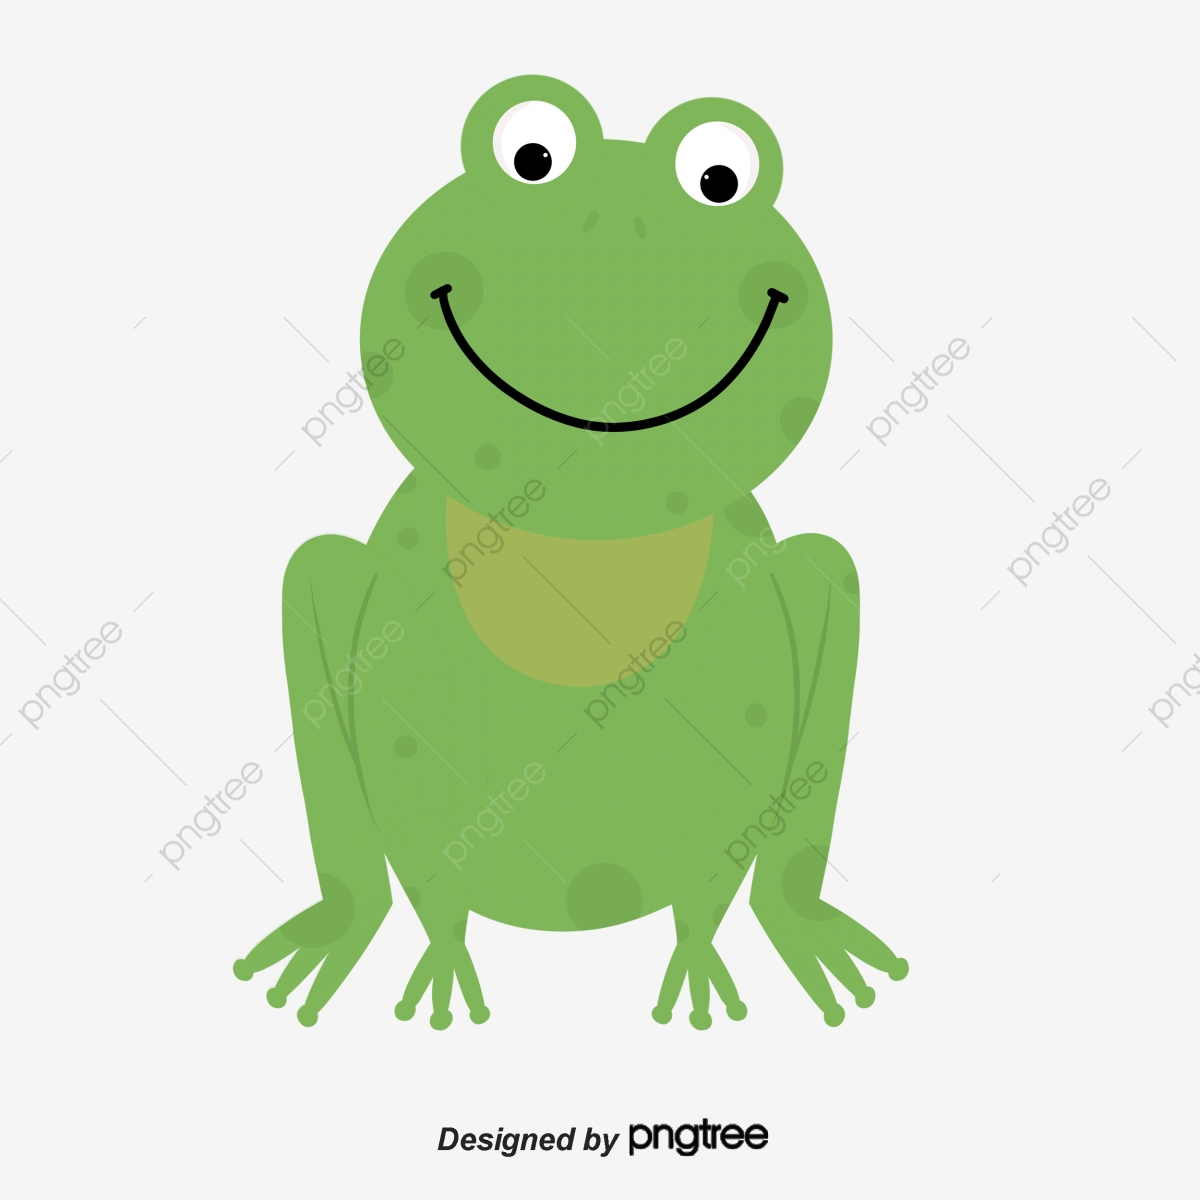 hight resolution of commercial use resource upgrade to premium plan and get license authorization upgradenow frog clipart